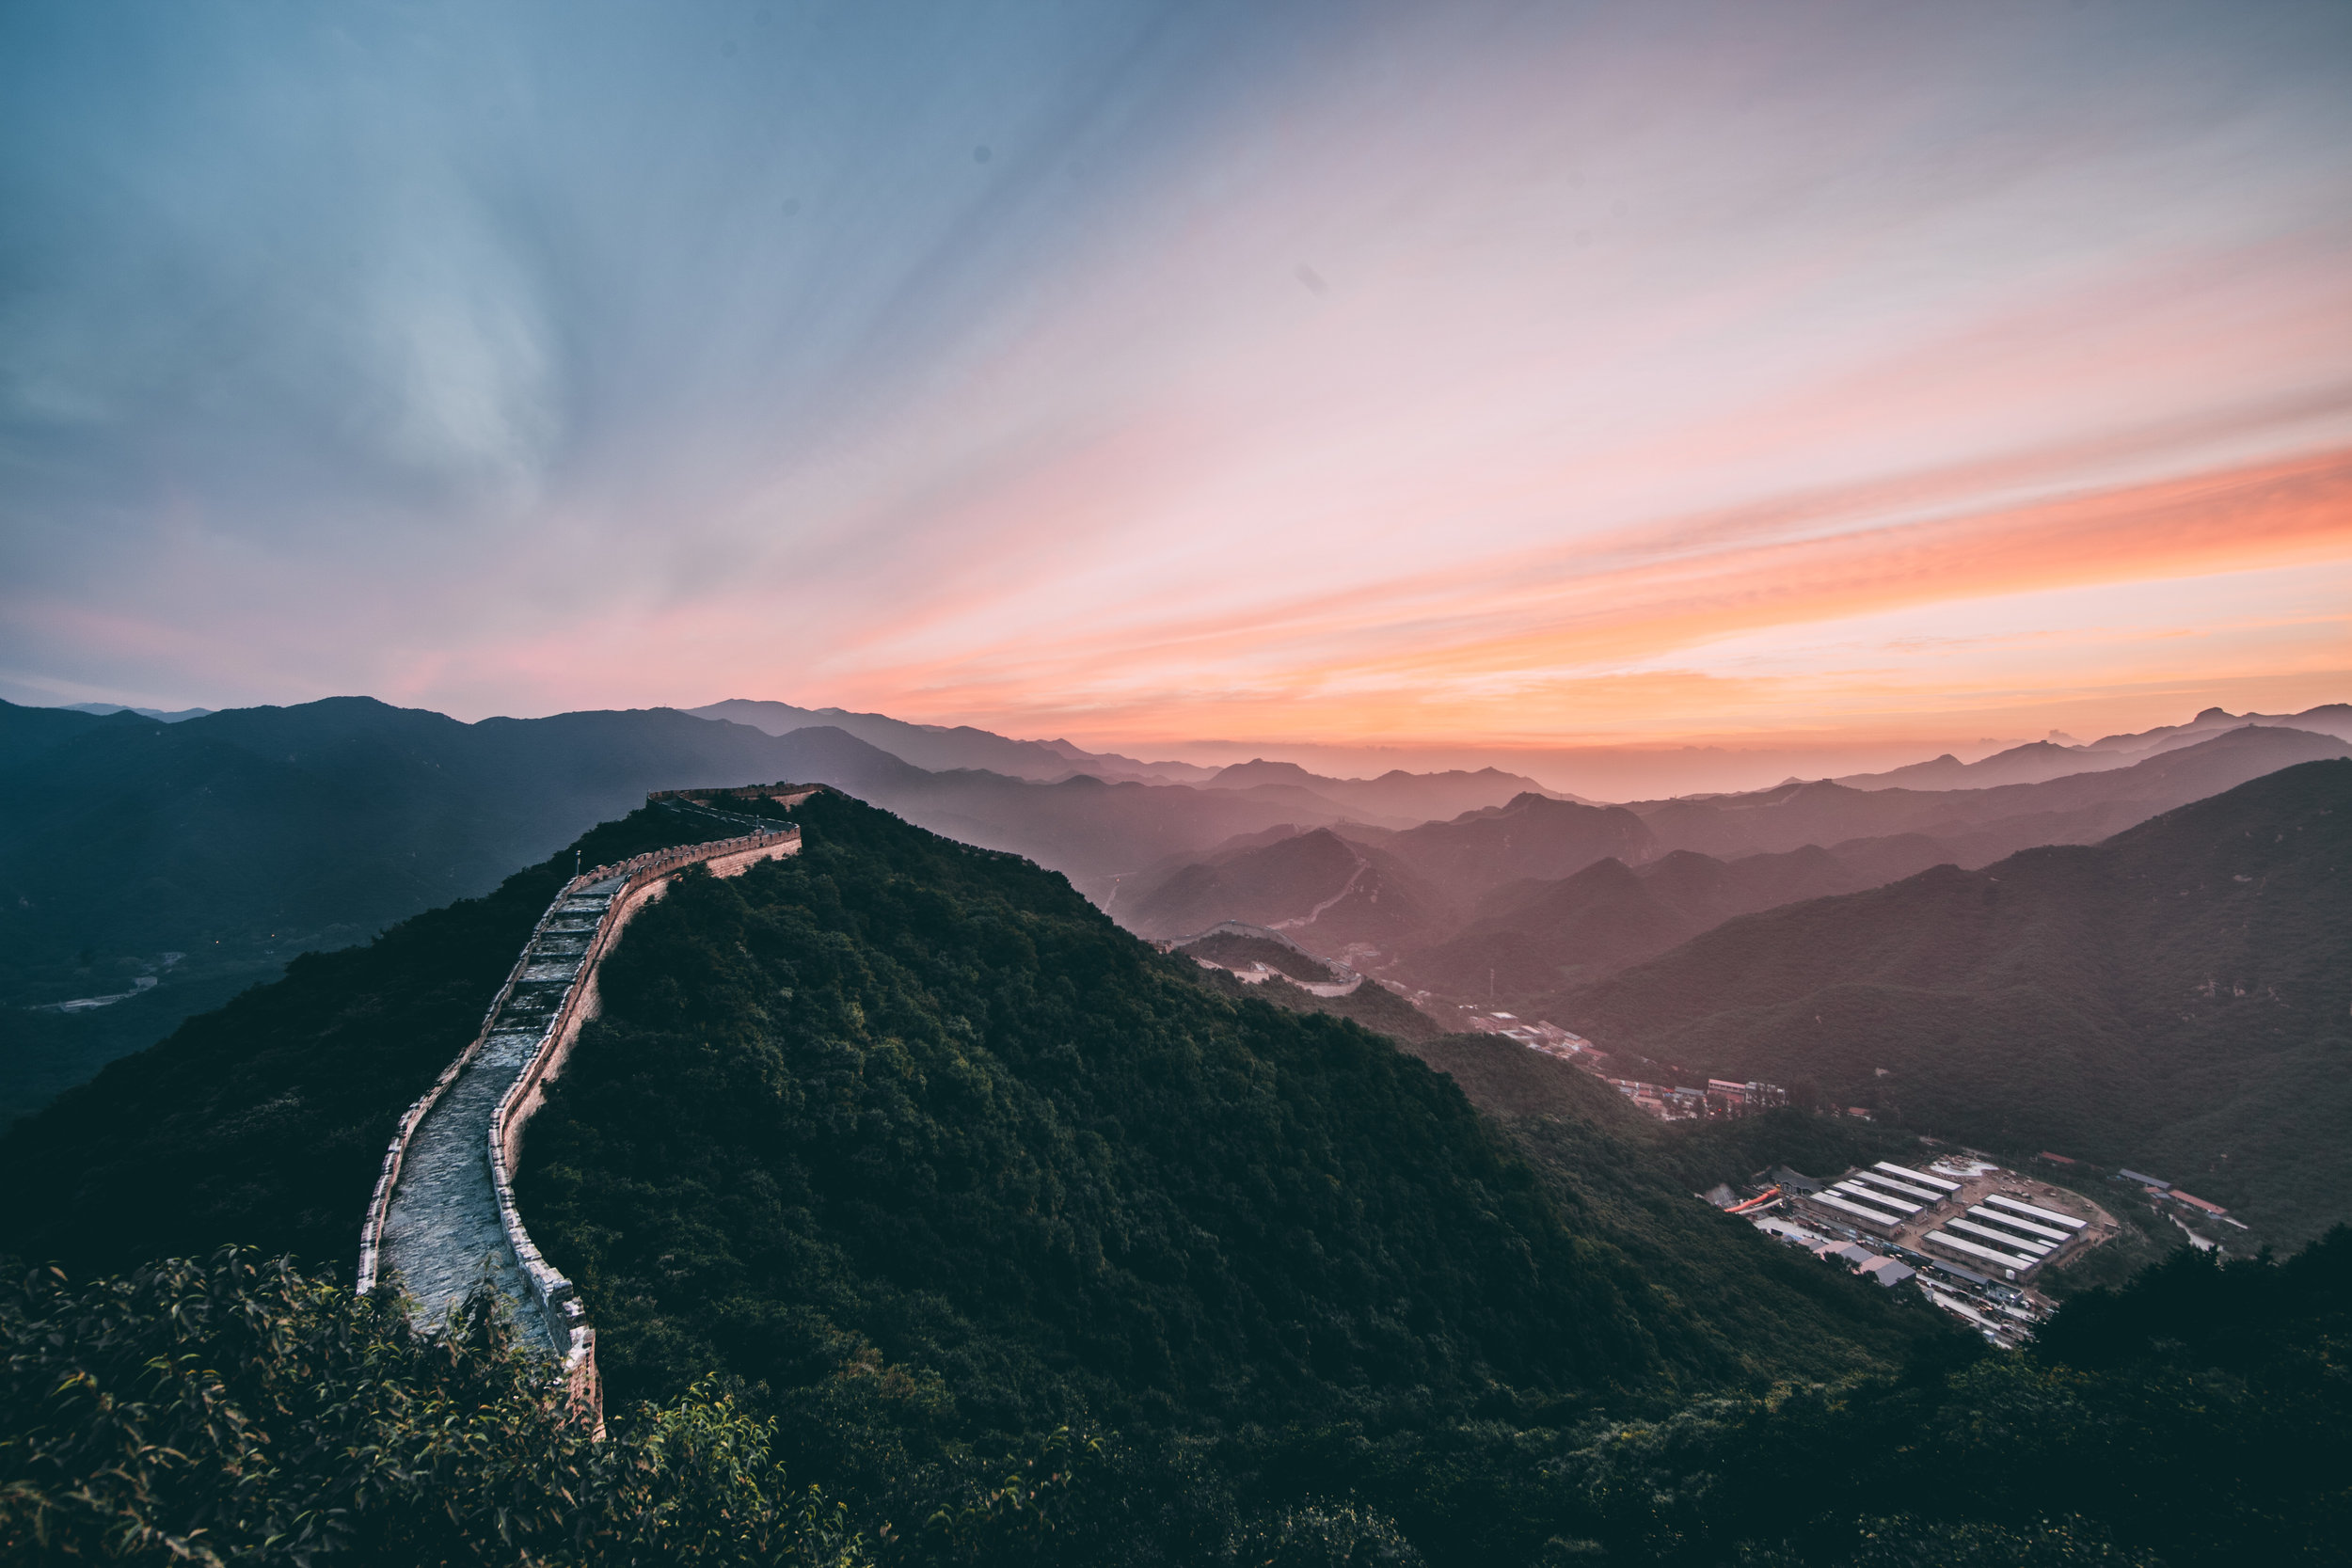 the-magic-sunset-hour-of-the-great-wall-of-china.jpg